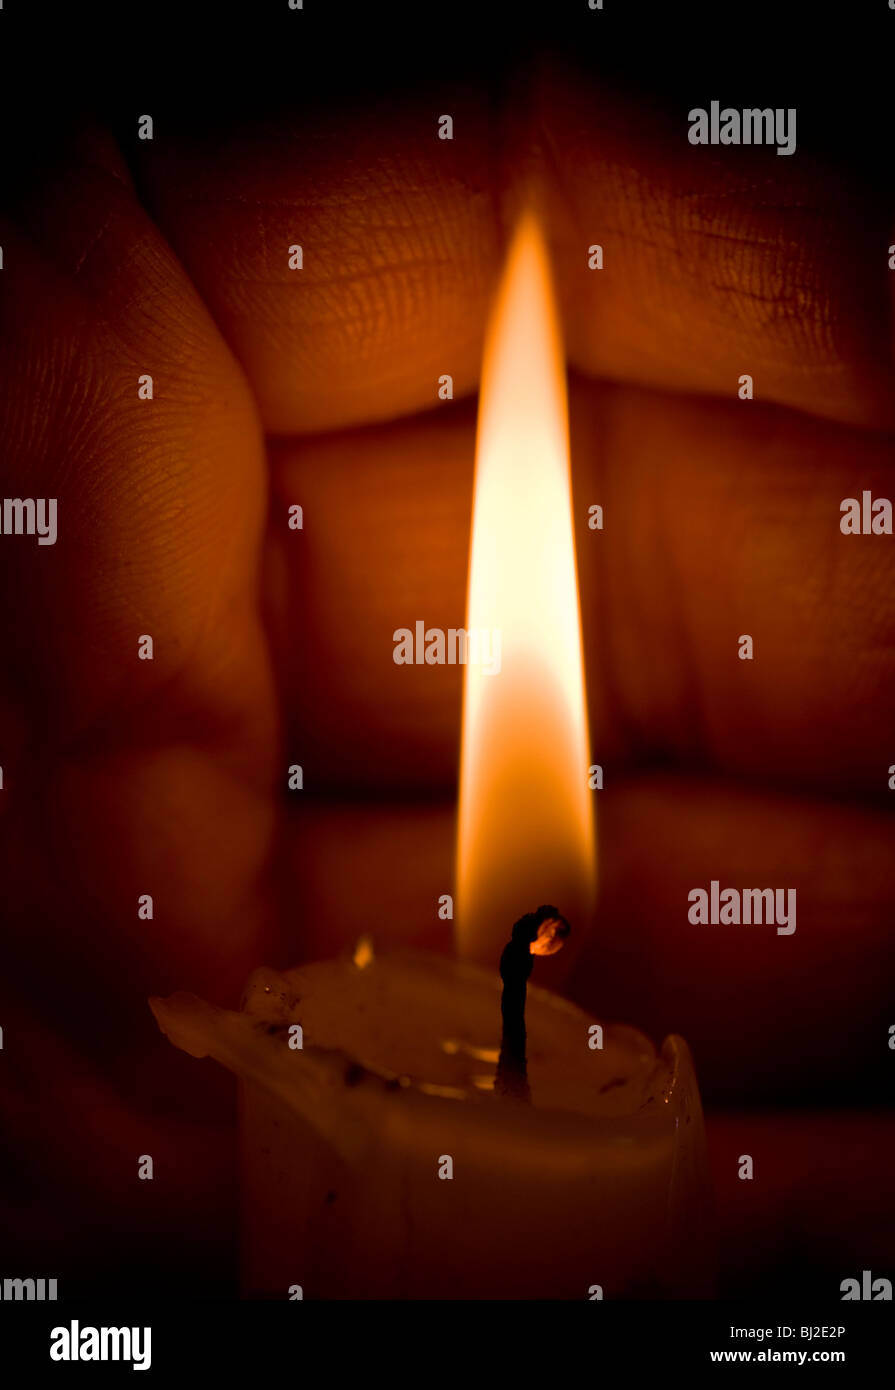 Candle Flame Stock Photos & Candle Flame Stock Images